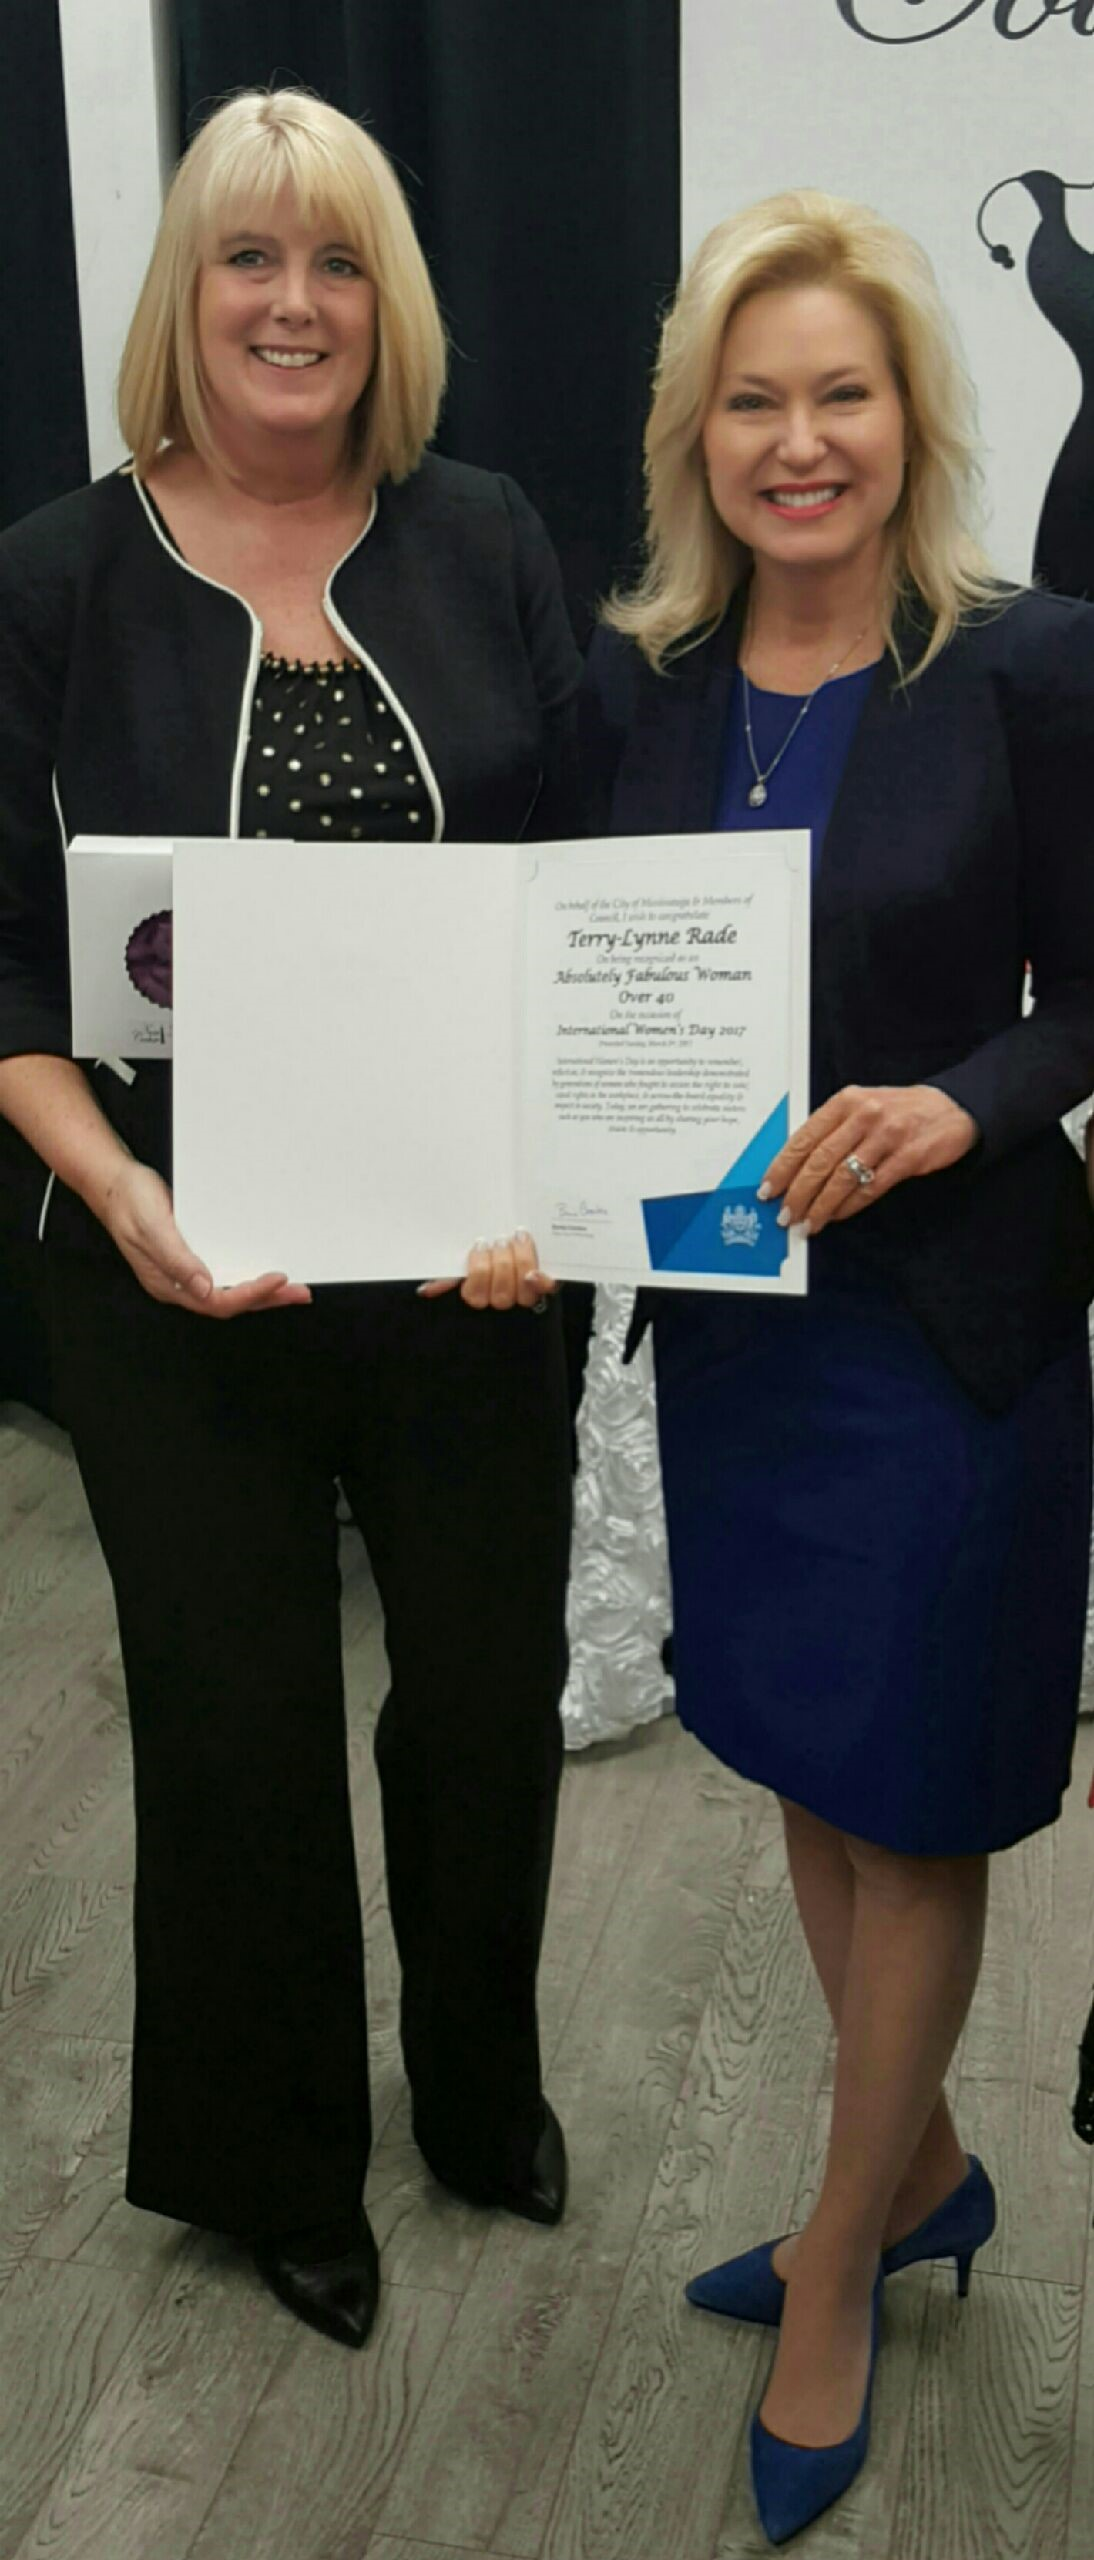 Owner of First Class Home Care, Terri-Lynne Rade presented with award from Misssissauga Mayor Bonnie Crombie